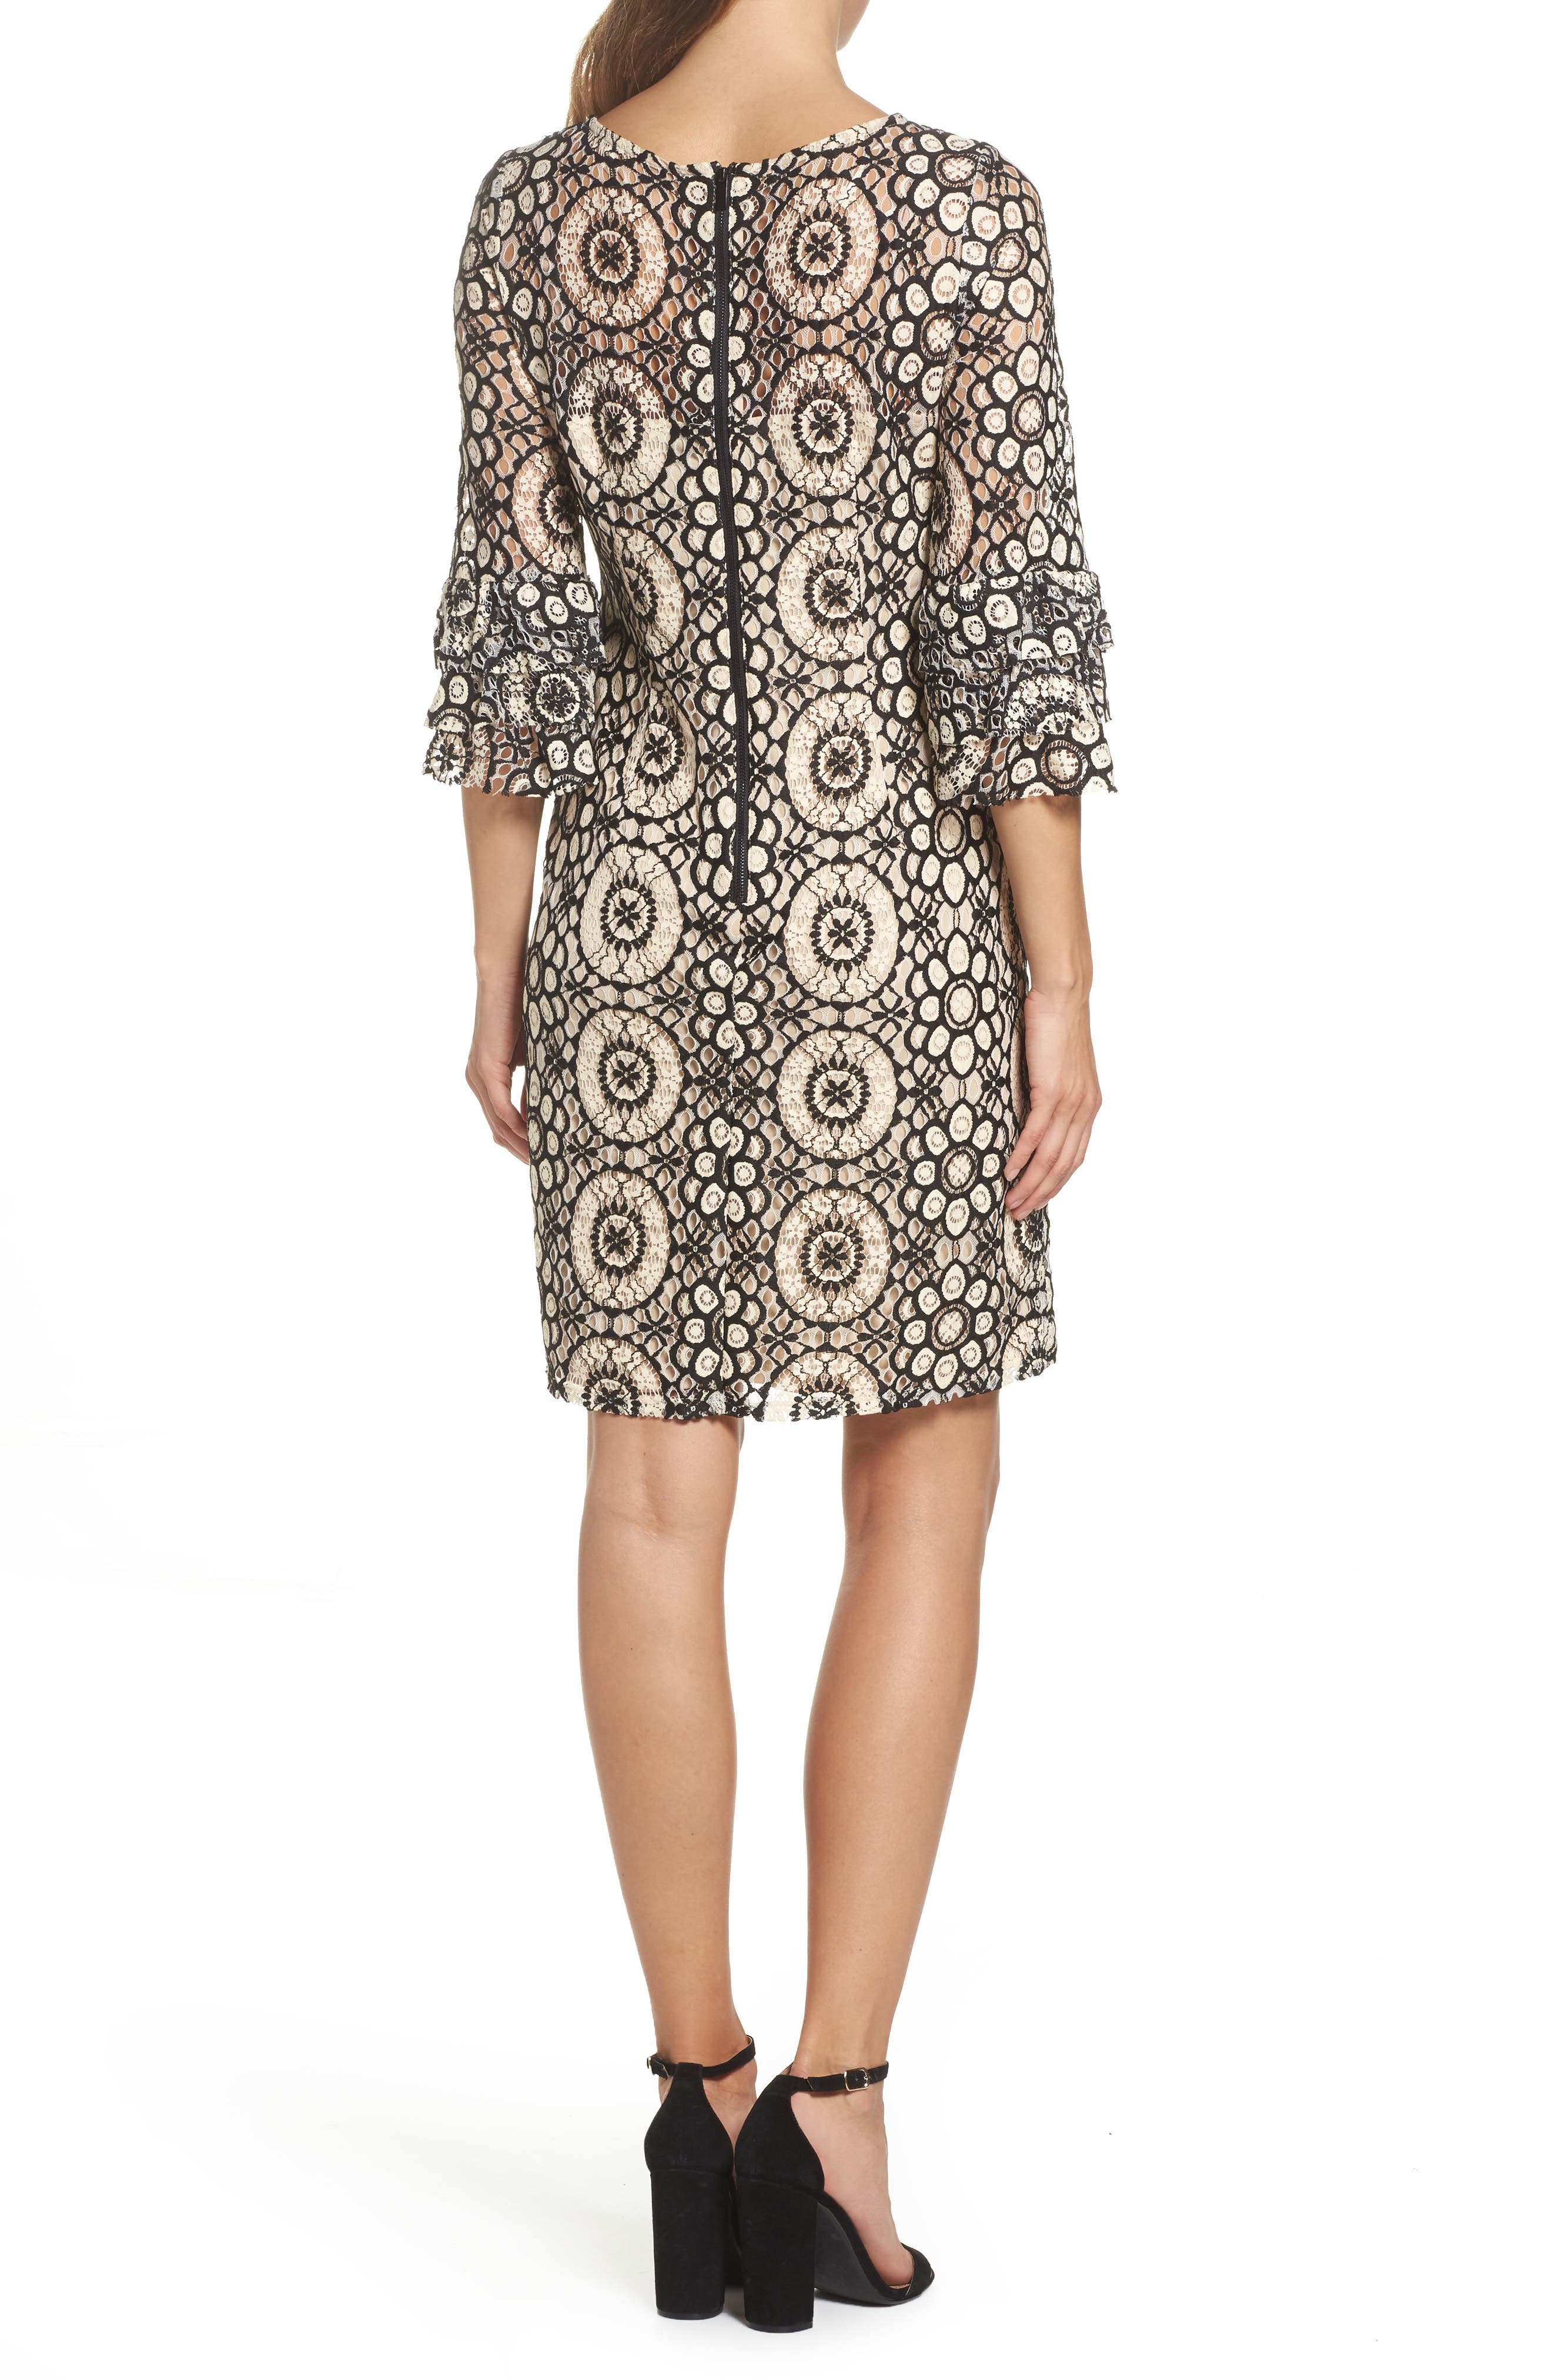 Tiered Sleeve Lace Shift Dress,                             Alternate thumbnail 2, color,                             901